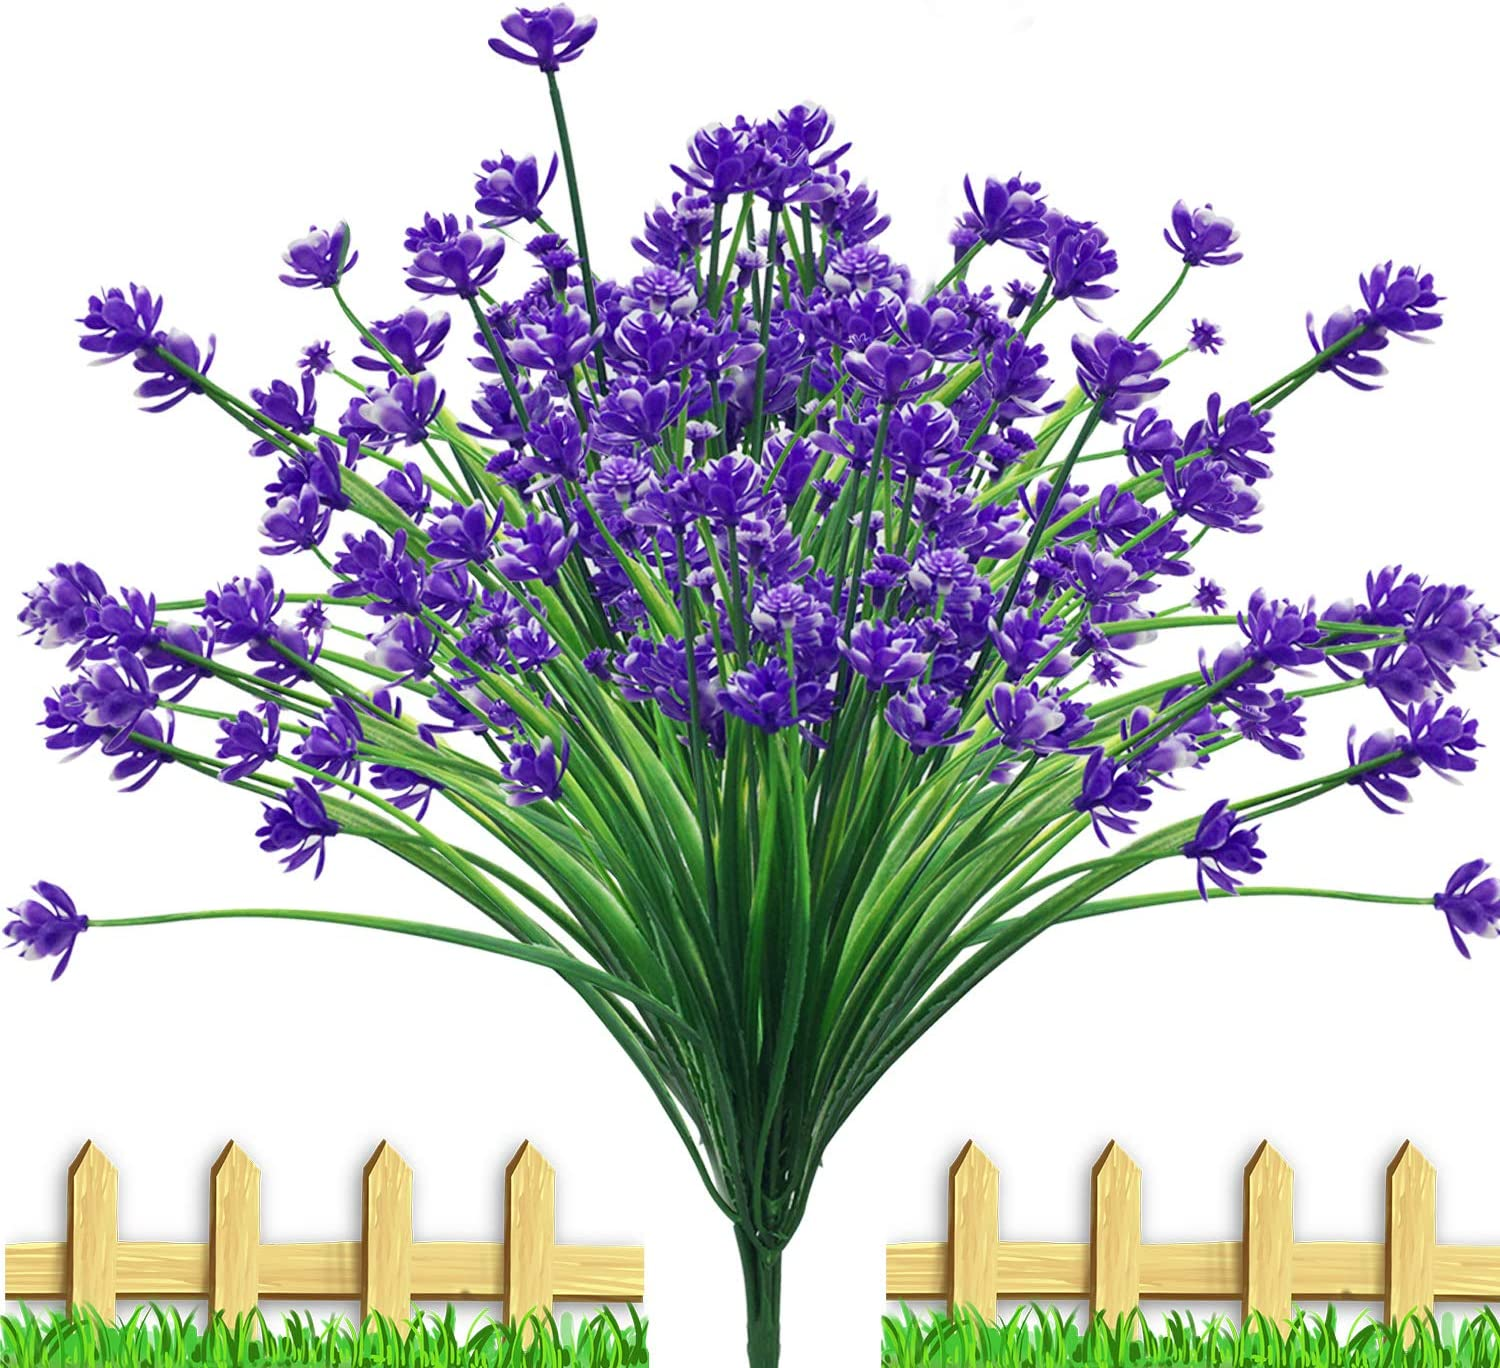 Artificial Fake Flowers Outdoor 24 Packs, UV Resistant Plants Faux Plastic Indoor Outside for Patio Window Box Indoor Outside Hanging Planter Garden Decor(Purple)